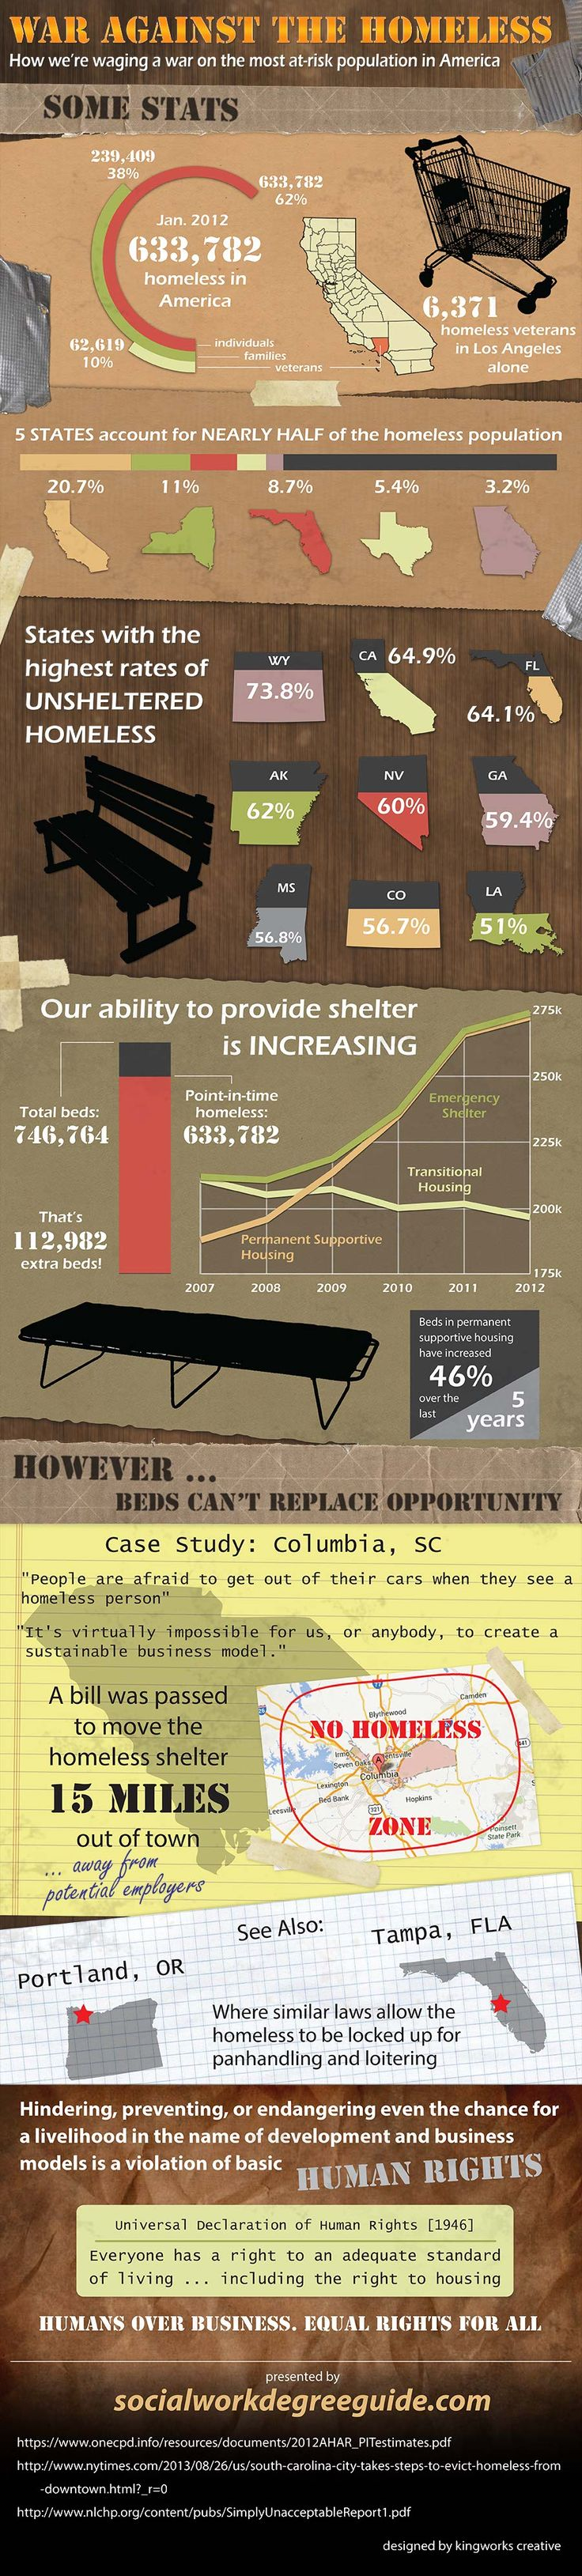 Homeless in the US 2012-Infographic